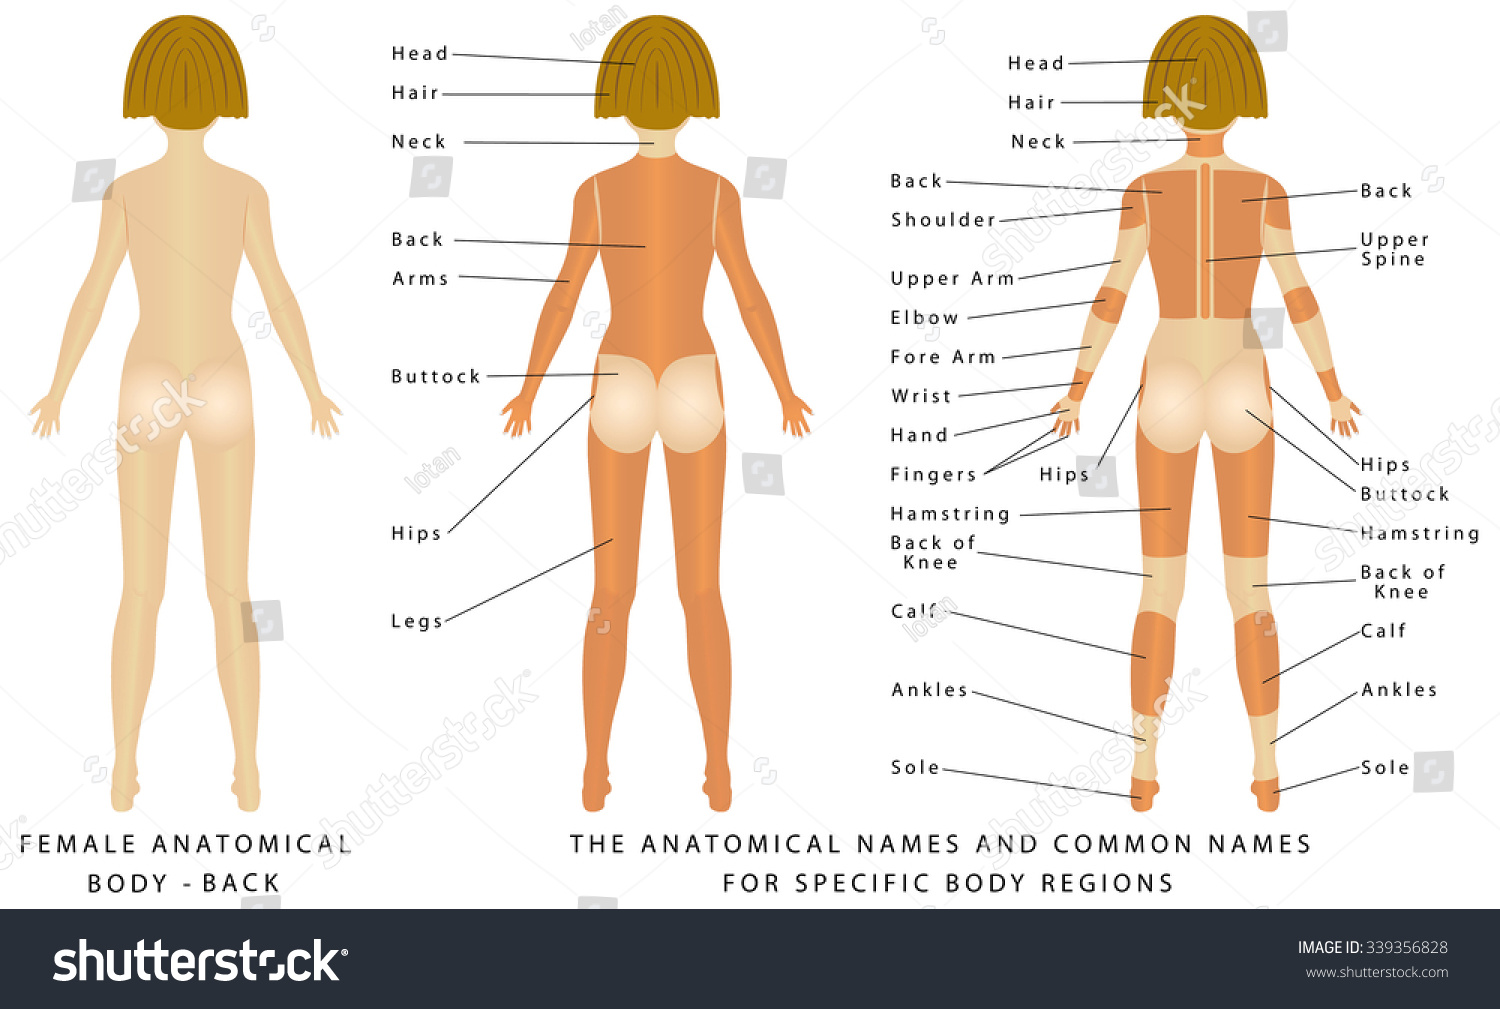 Female Body Back Surface Anatomy Human Stock Vector (Royalty Free ...